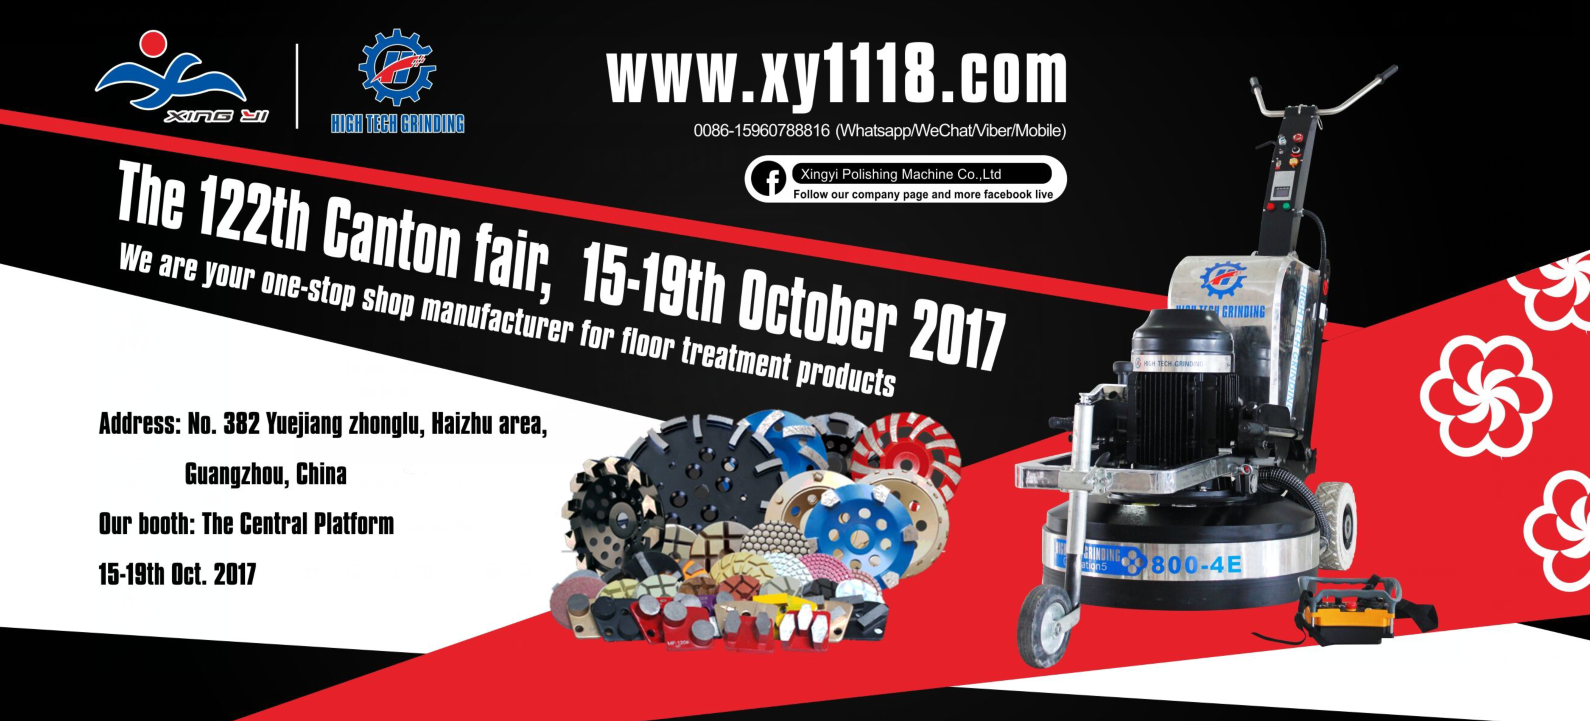 RE: Xingyi will be in the 122th Canton Fair at  15-19th. Oct.2017